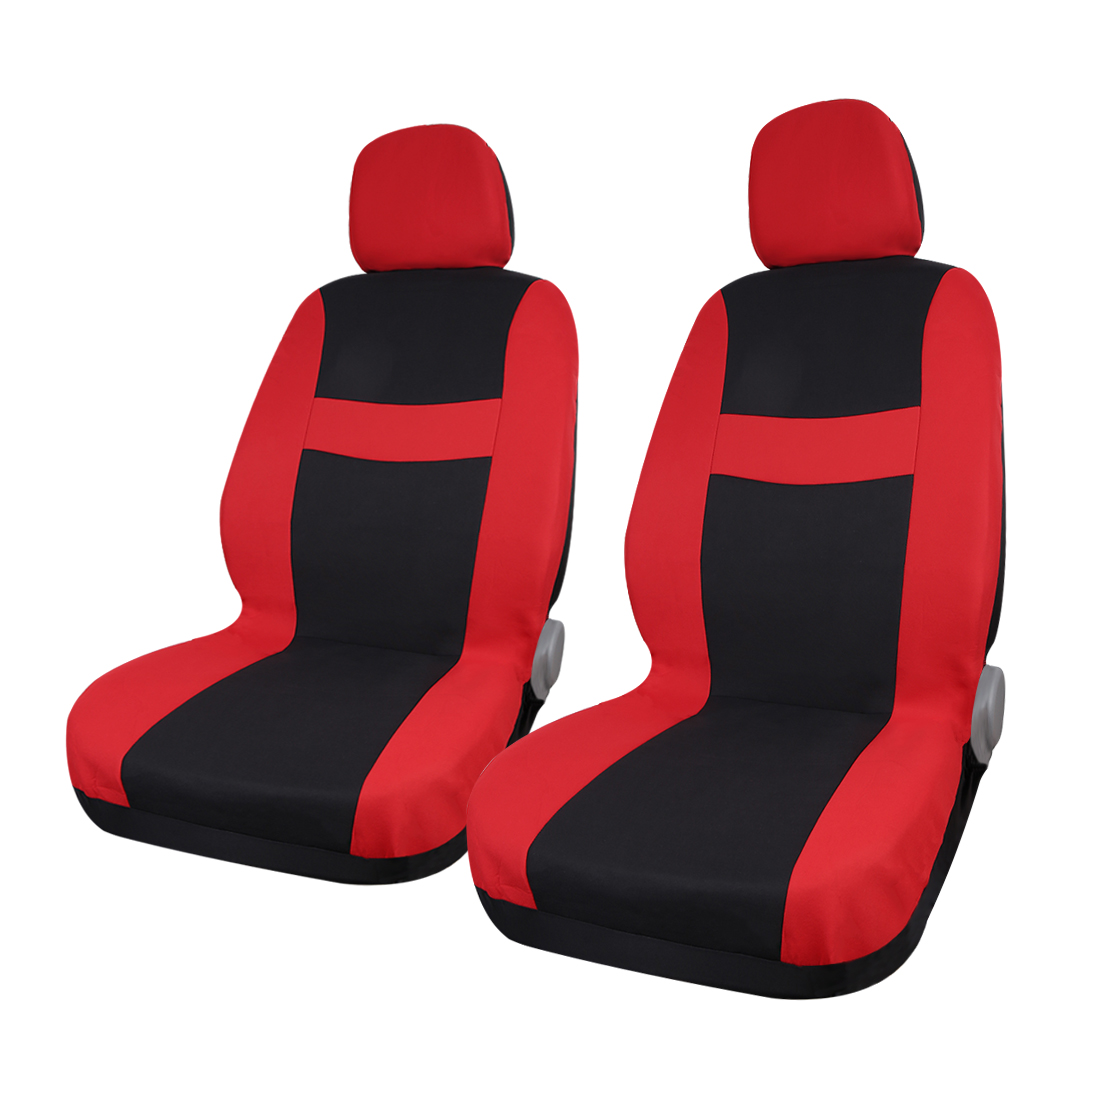 Red Black Car Seat Covers with Headrest for Auto Truck